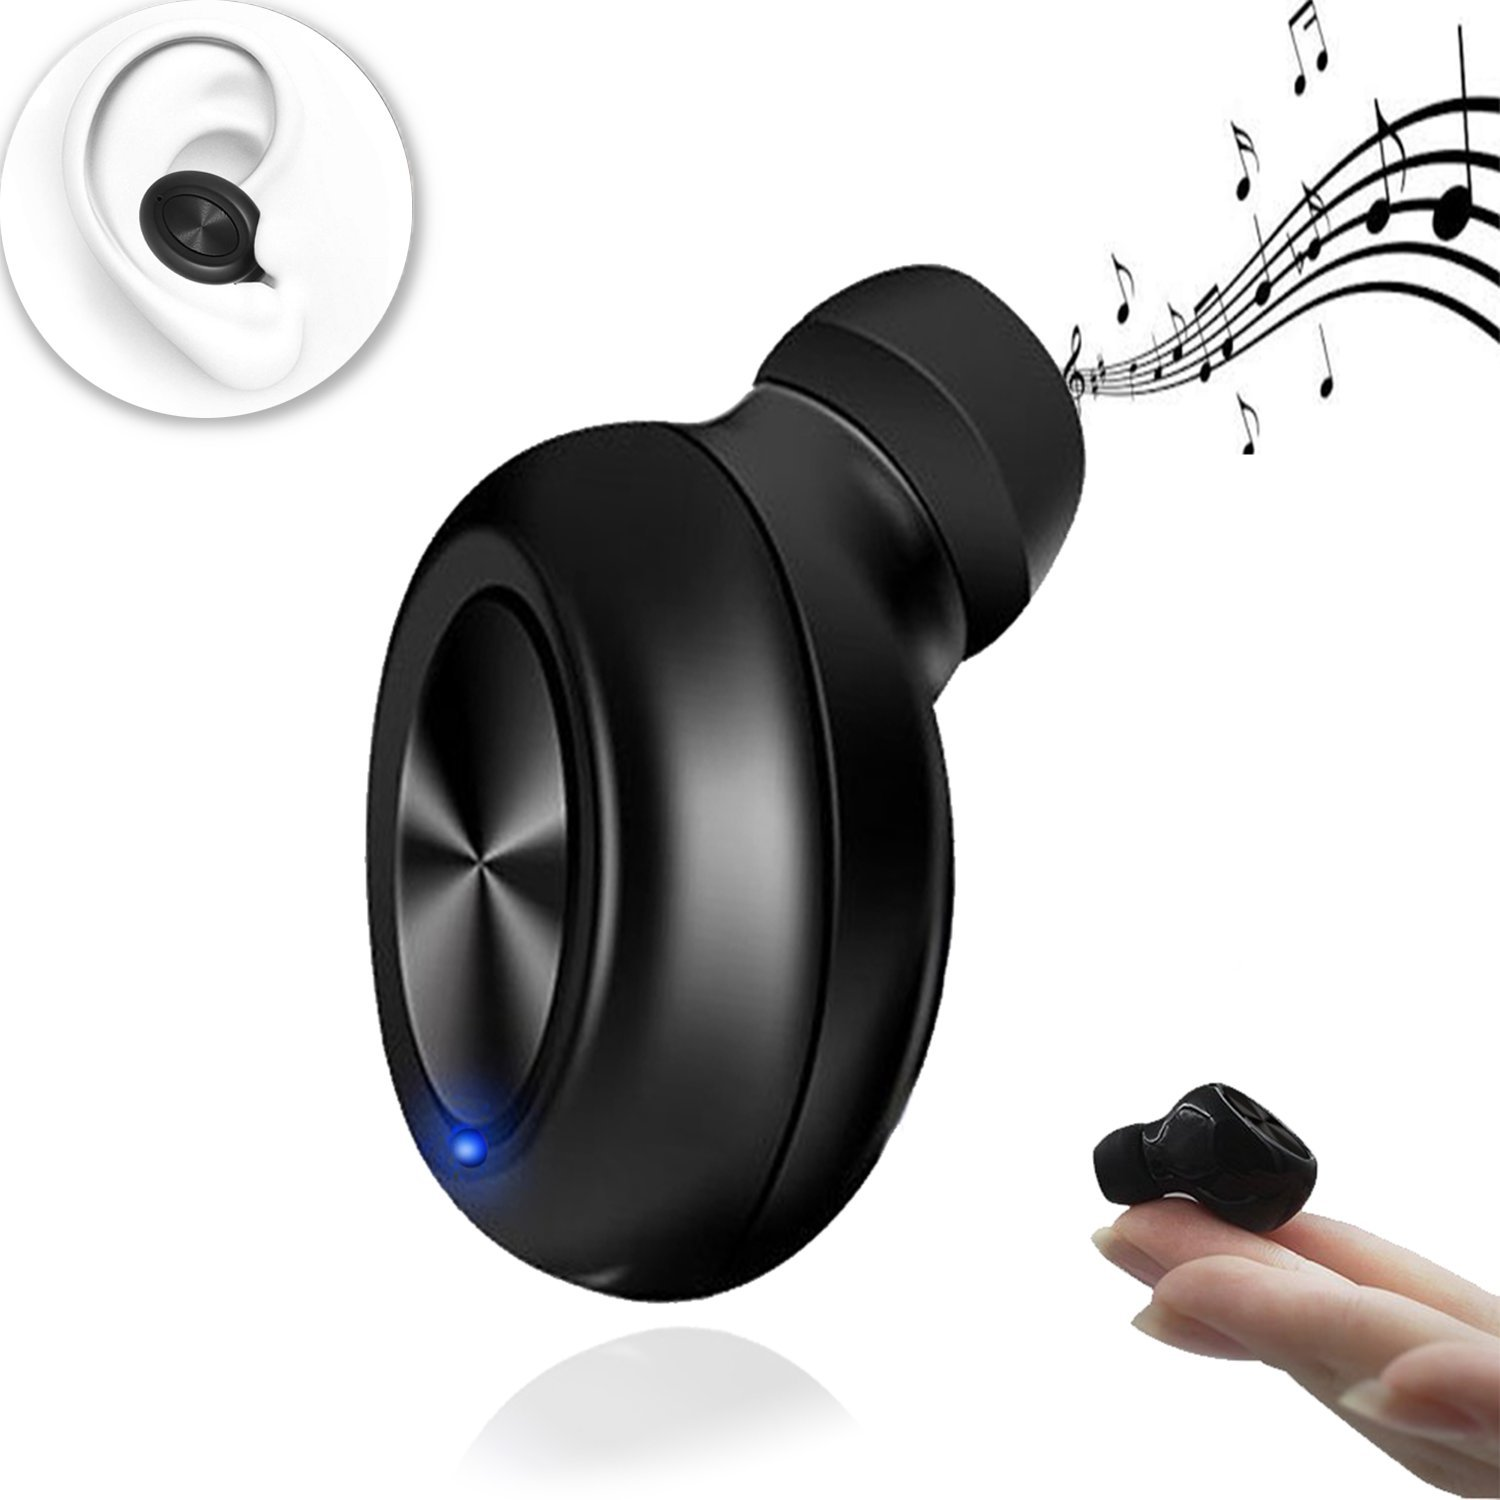 Bluetooth Earbud Best Earphone mini-s Smallest Earpiece Wireless Invisible Headphone with 6 Hour Playtime Car Headset with Mic for iPhone and Android Smart Phones Bluetooth headset earbud phones